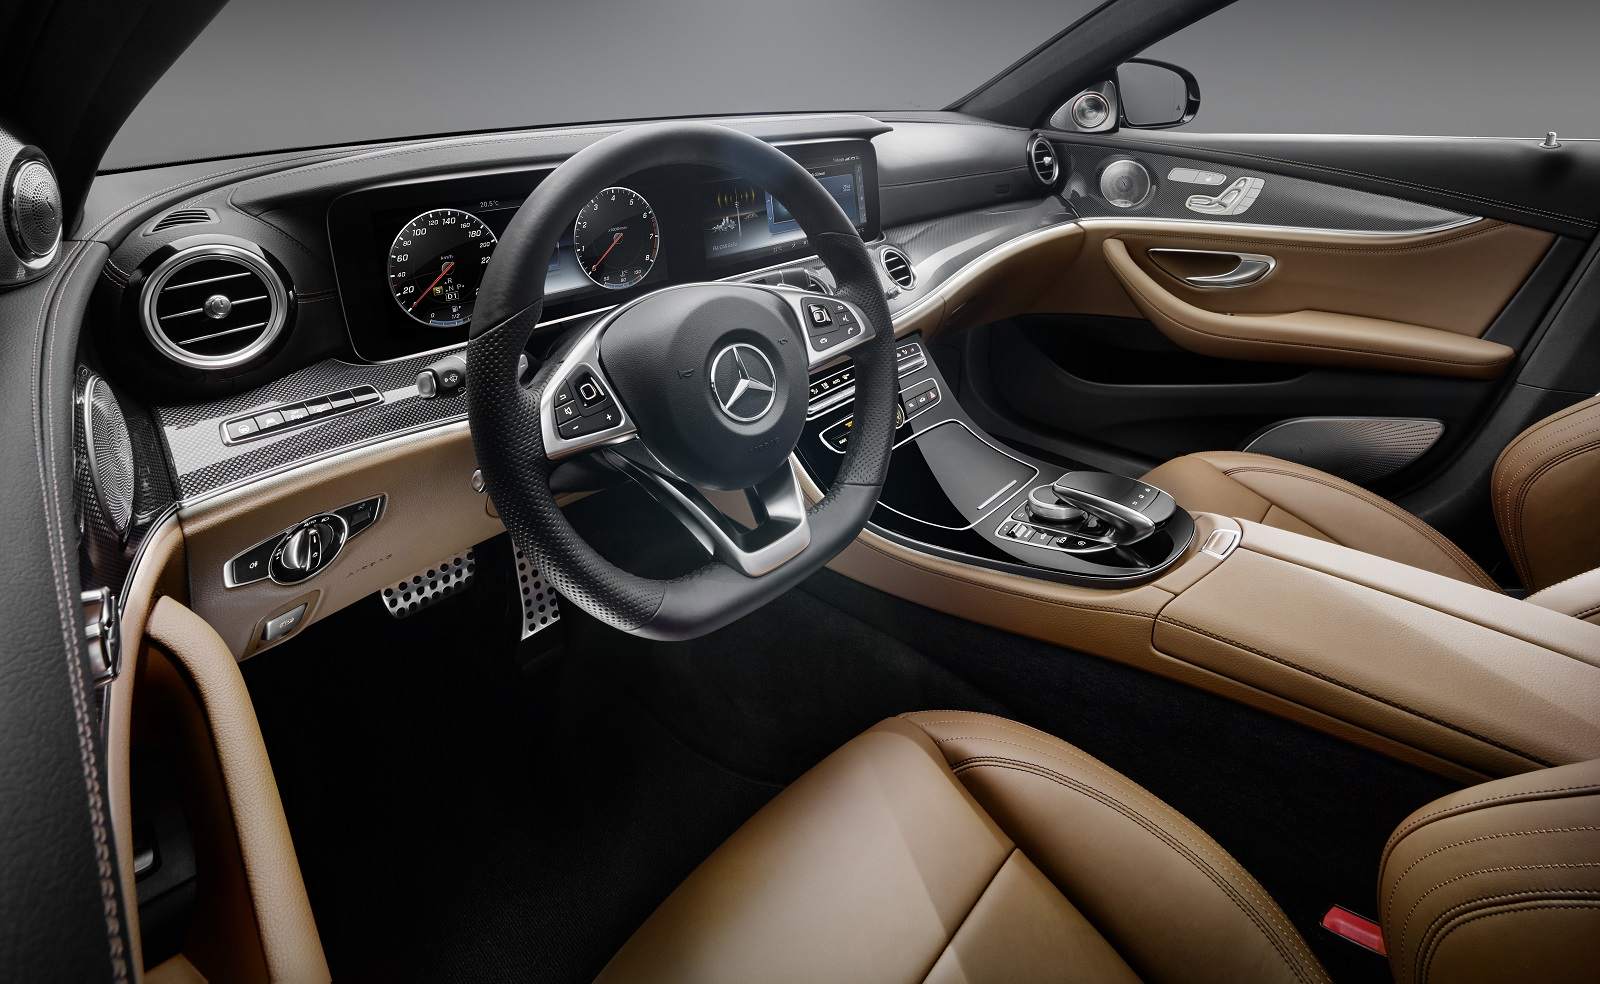 2017 Mercedes Benz E Class Interior Revealed All Glass Dash Display Video